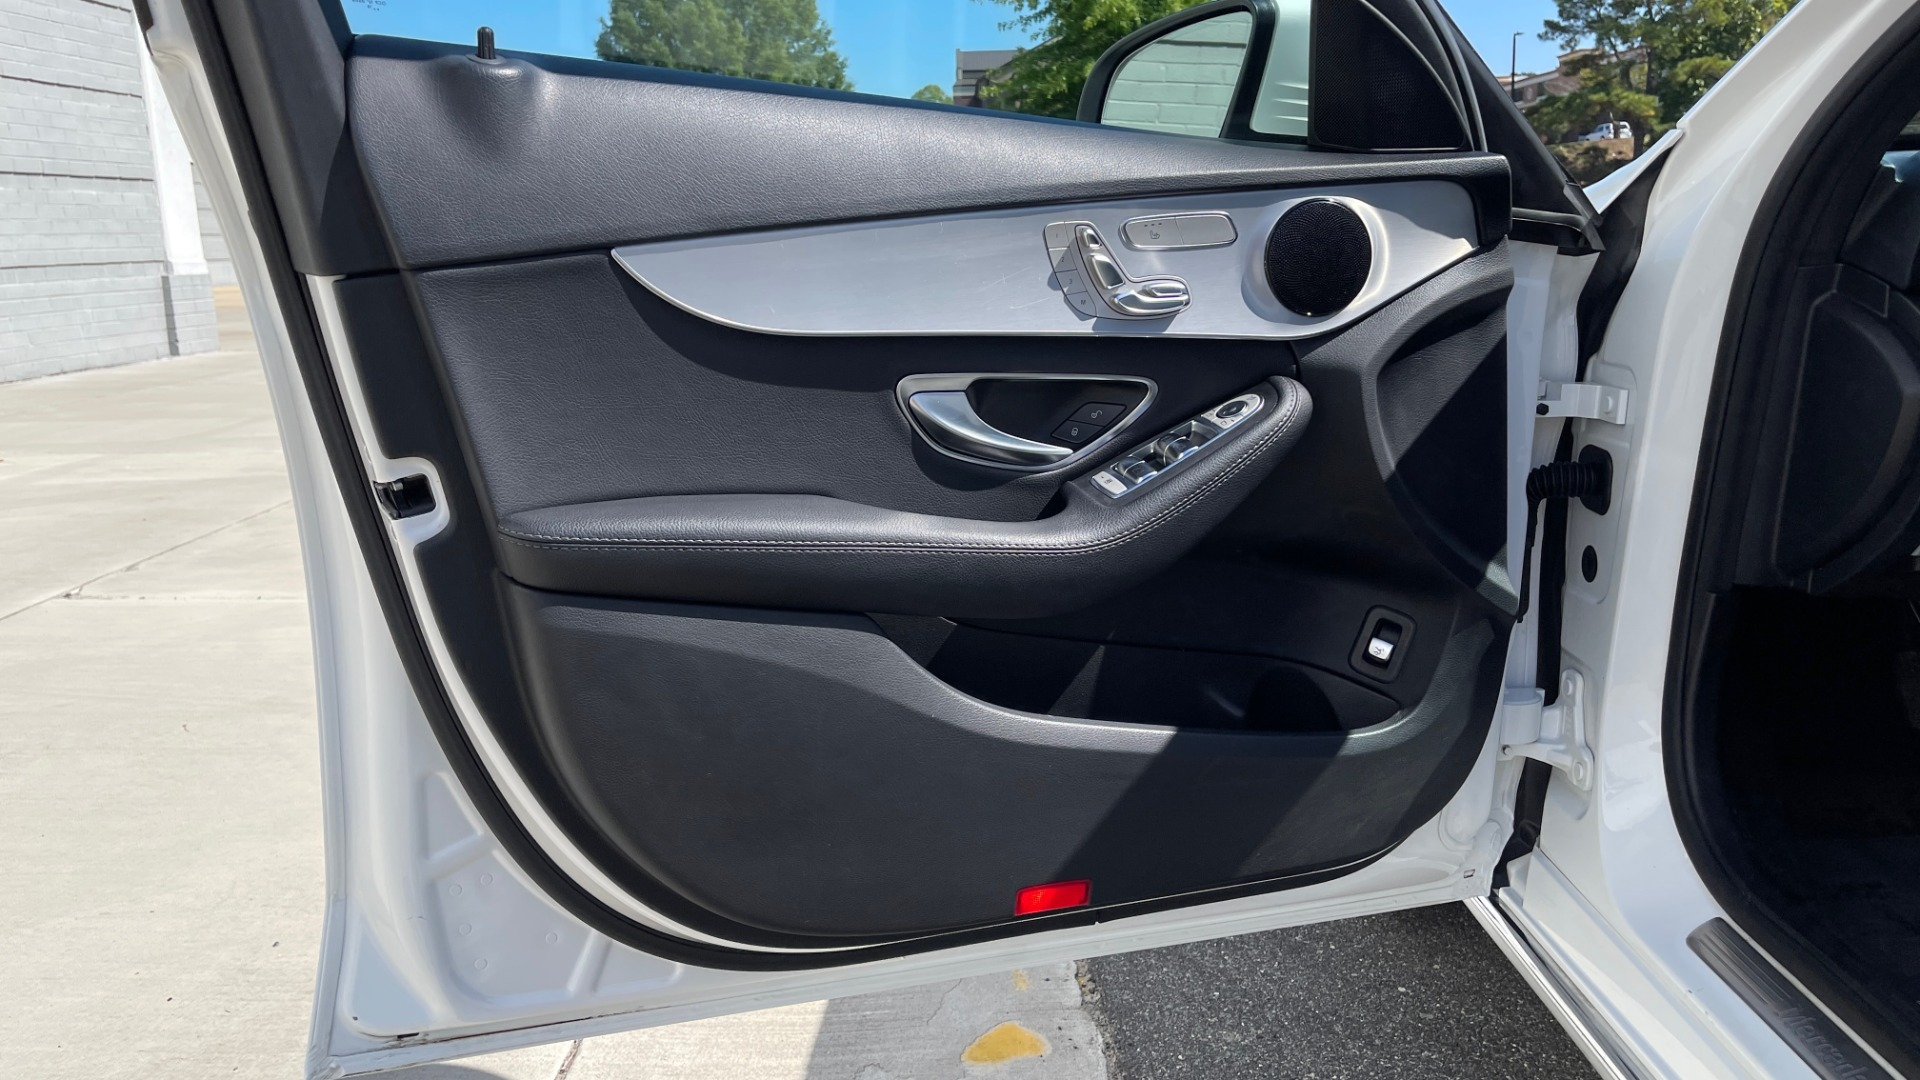 Used 2018 Mercedes-Benz C-CLASS C 300 PREMIUM / APPLE CARPLAY / KEYLESS-GO / SUNROOF / REARVIEW for sale $32,995 at Formula Imports in Charlotte NC 28227 21